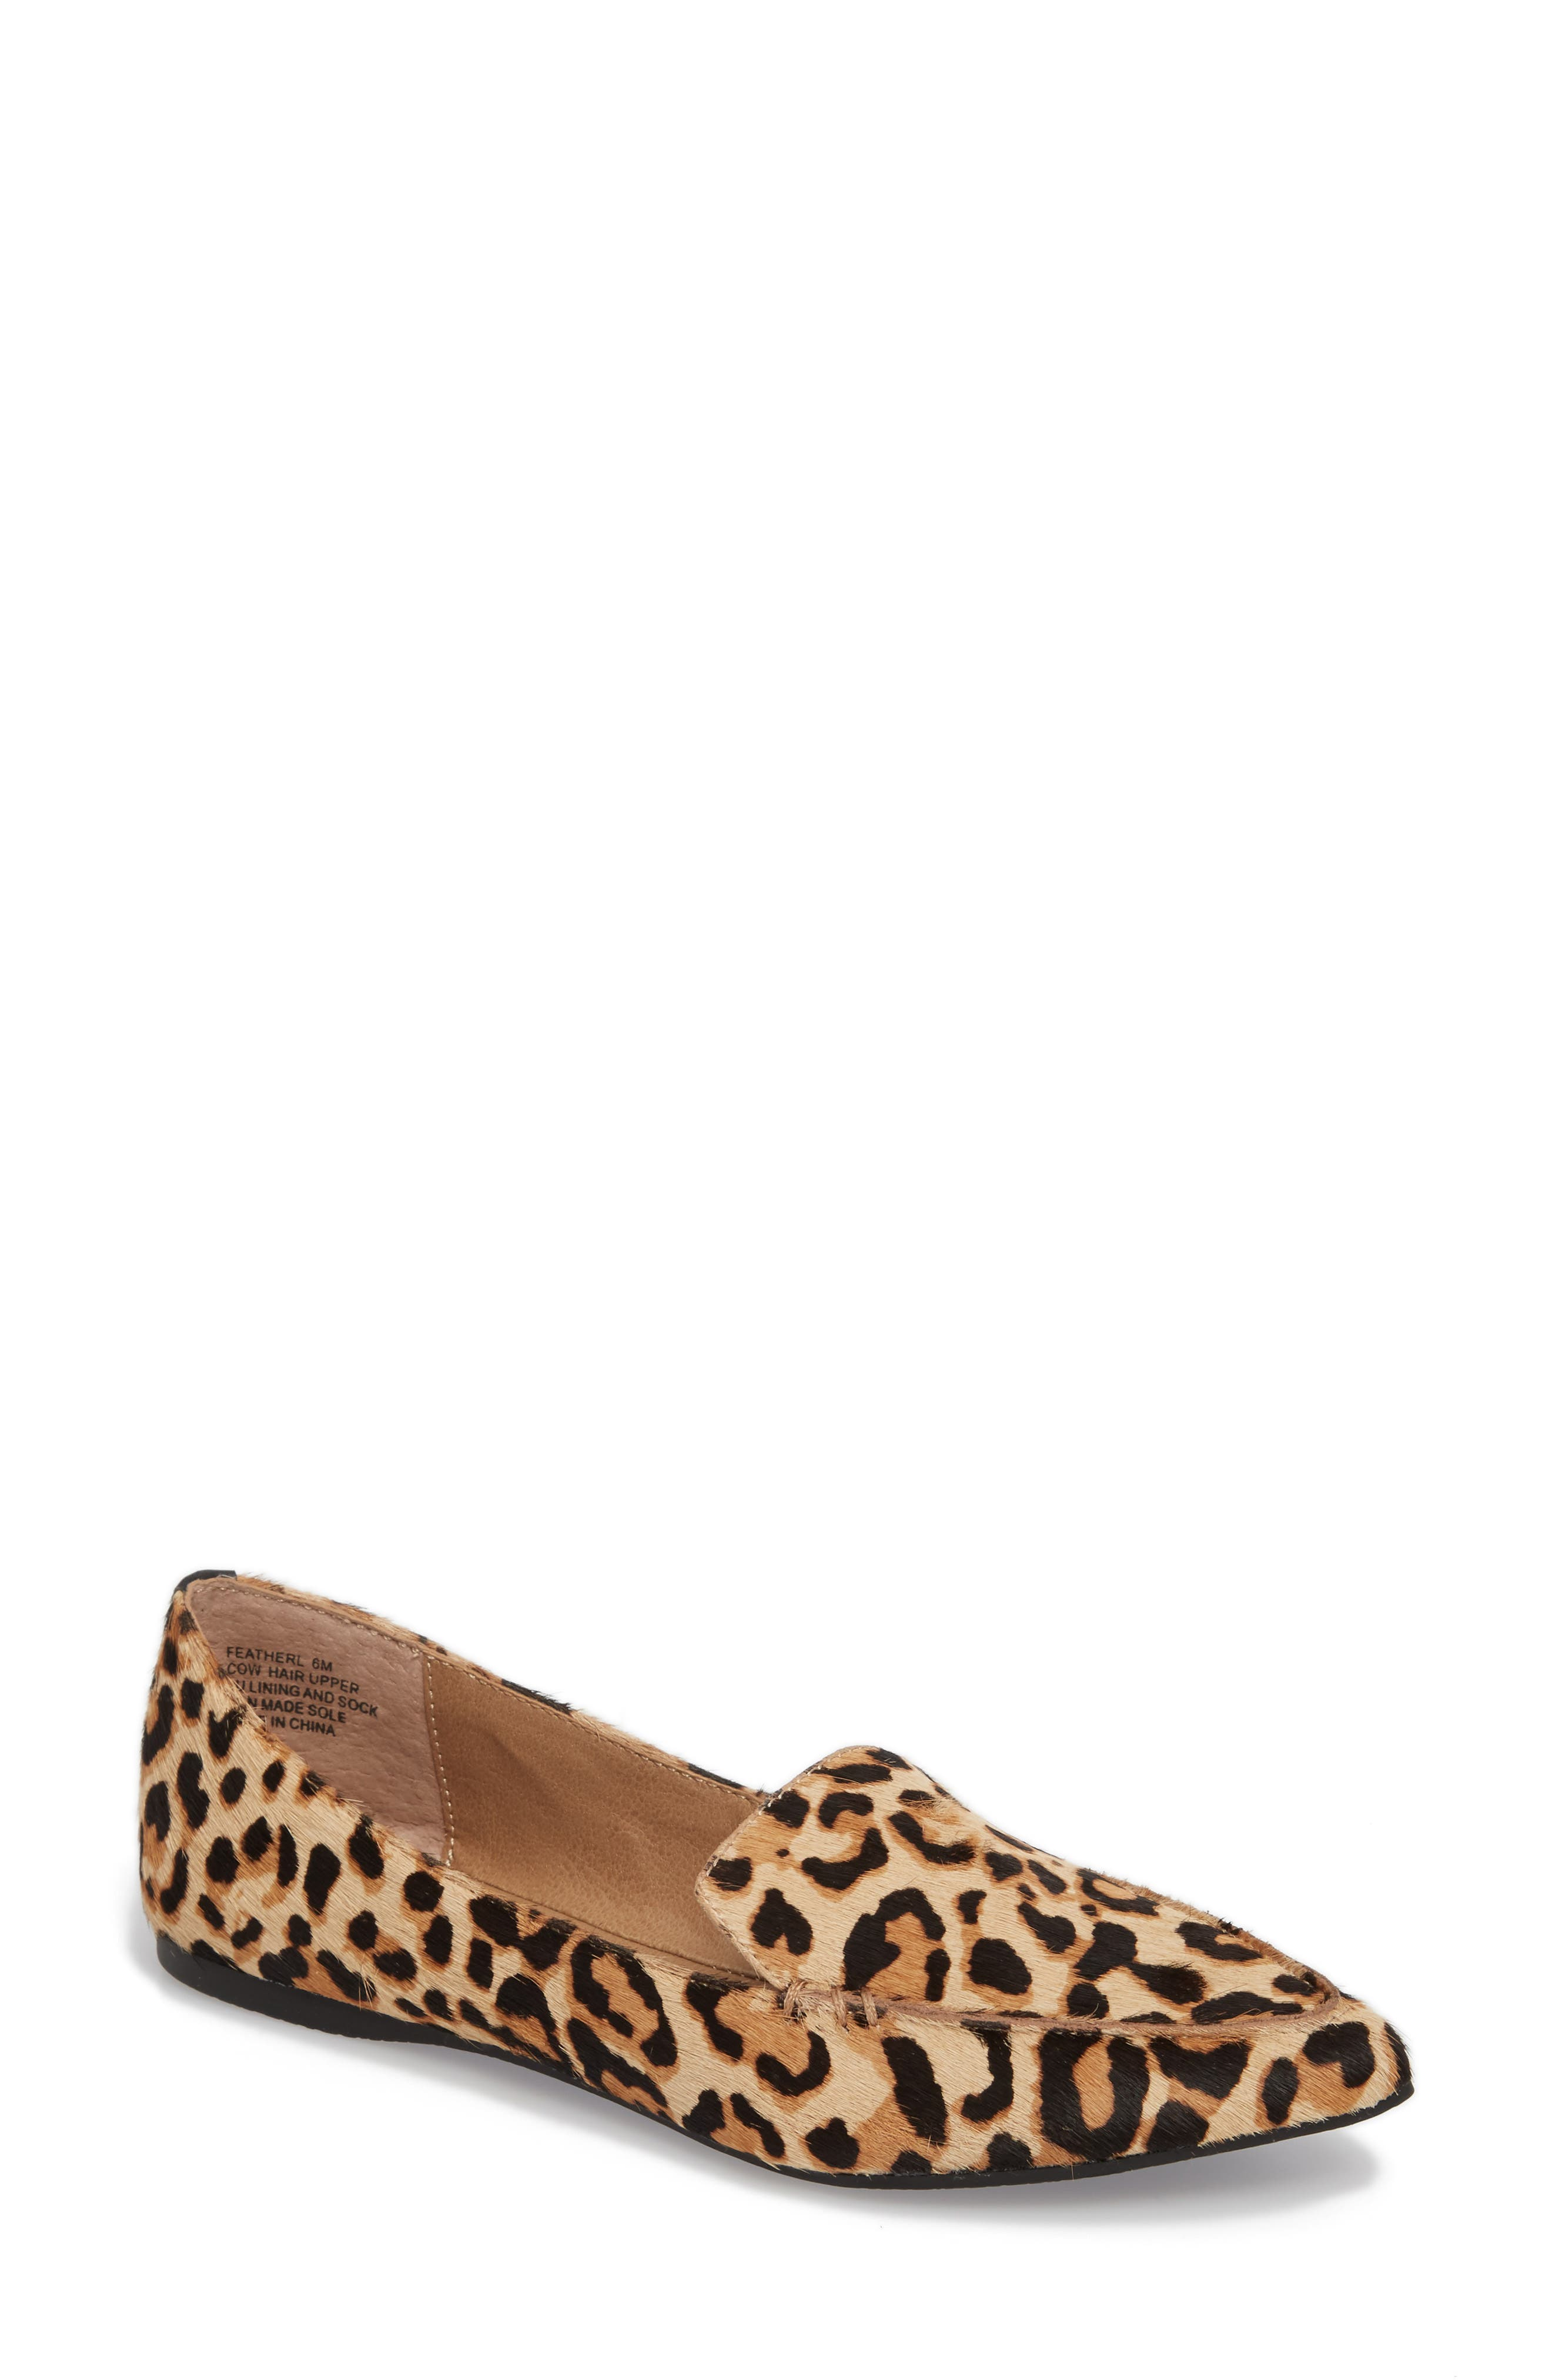 Alternate Image 1 Selected - Steve Madden Feather-L Genuine Calf Hair Loafer Flat (Women)